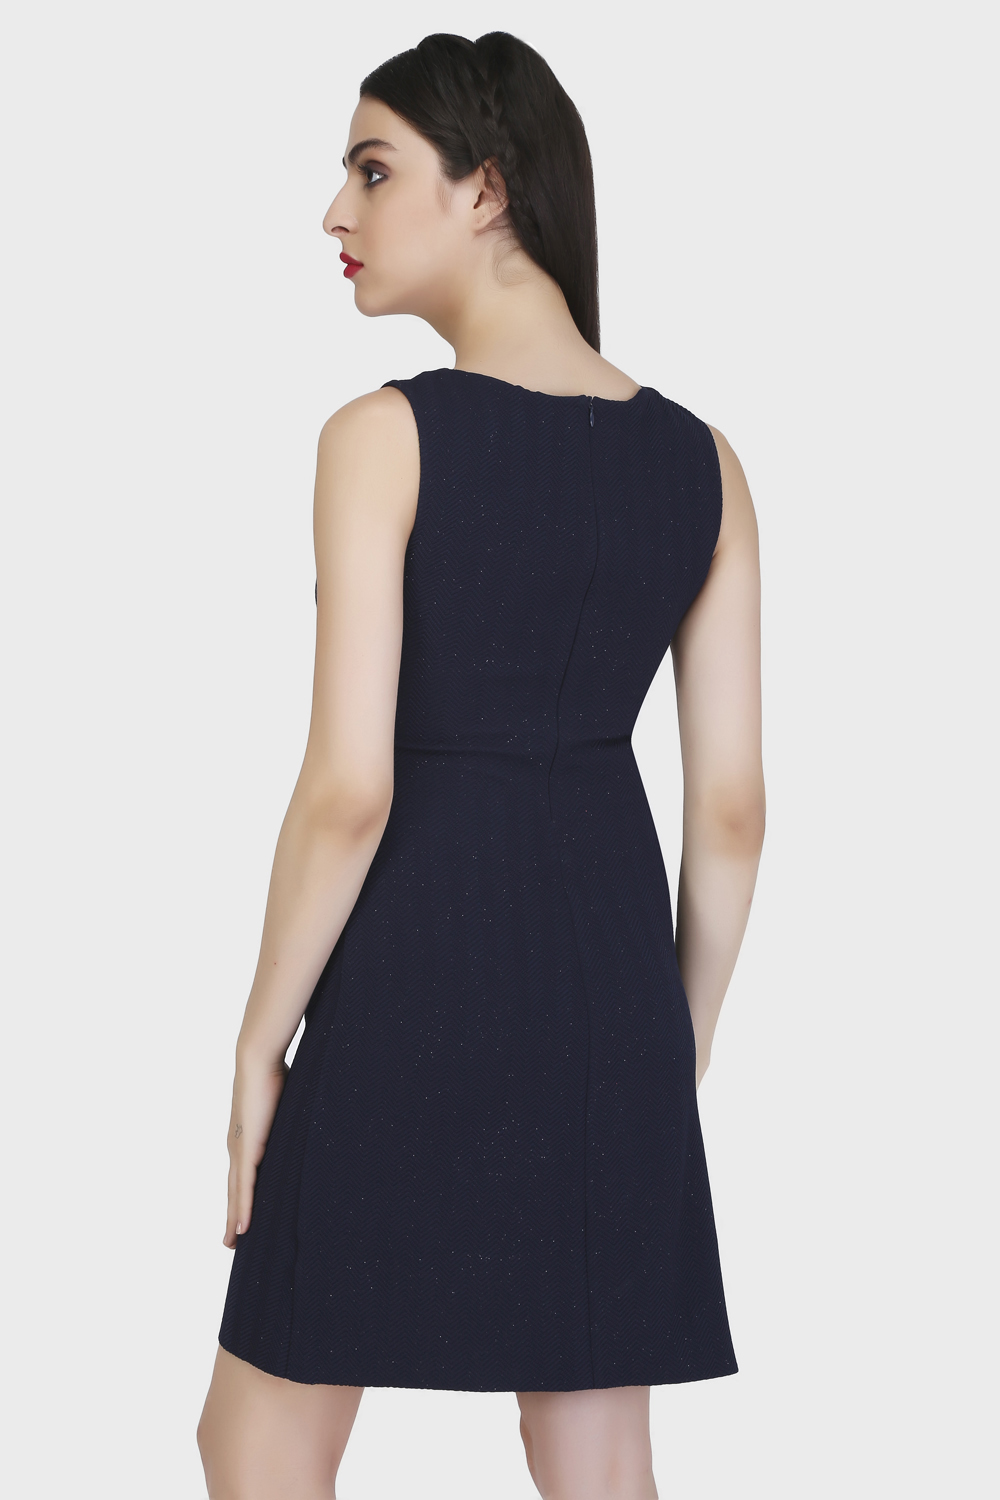 Panel Sheath Dress -2